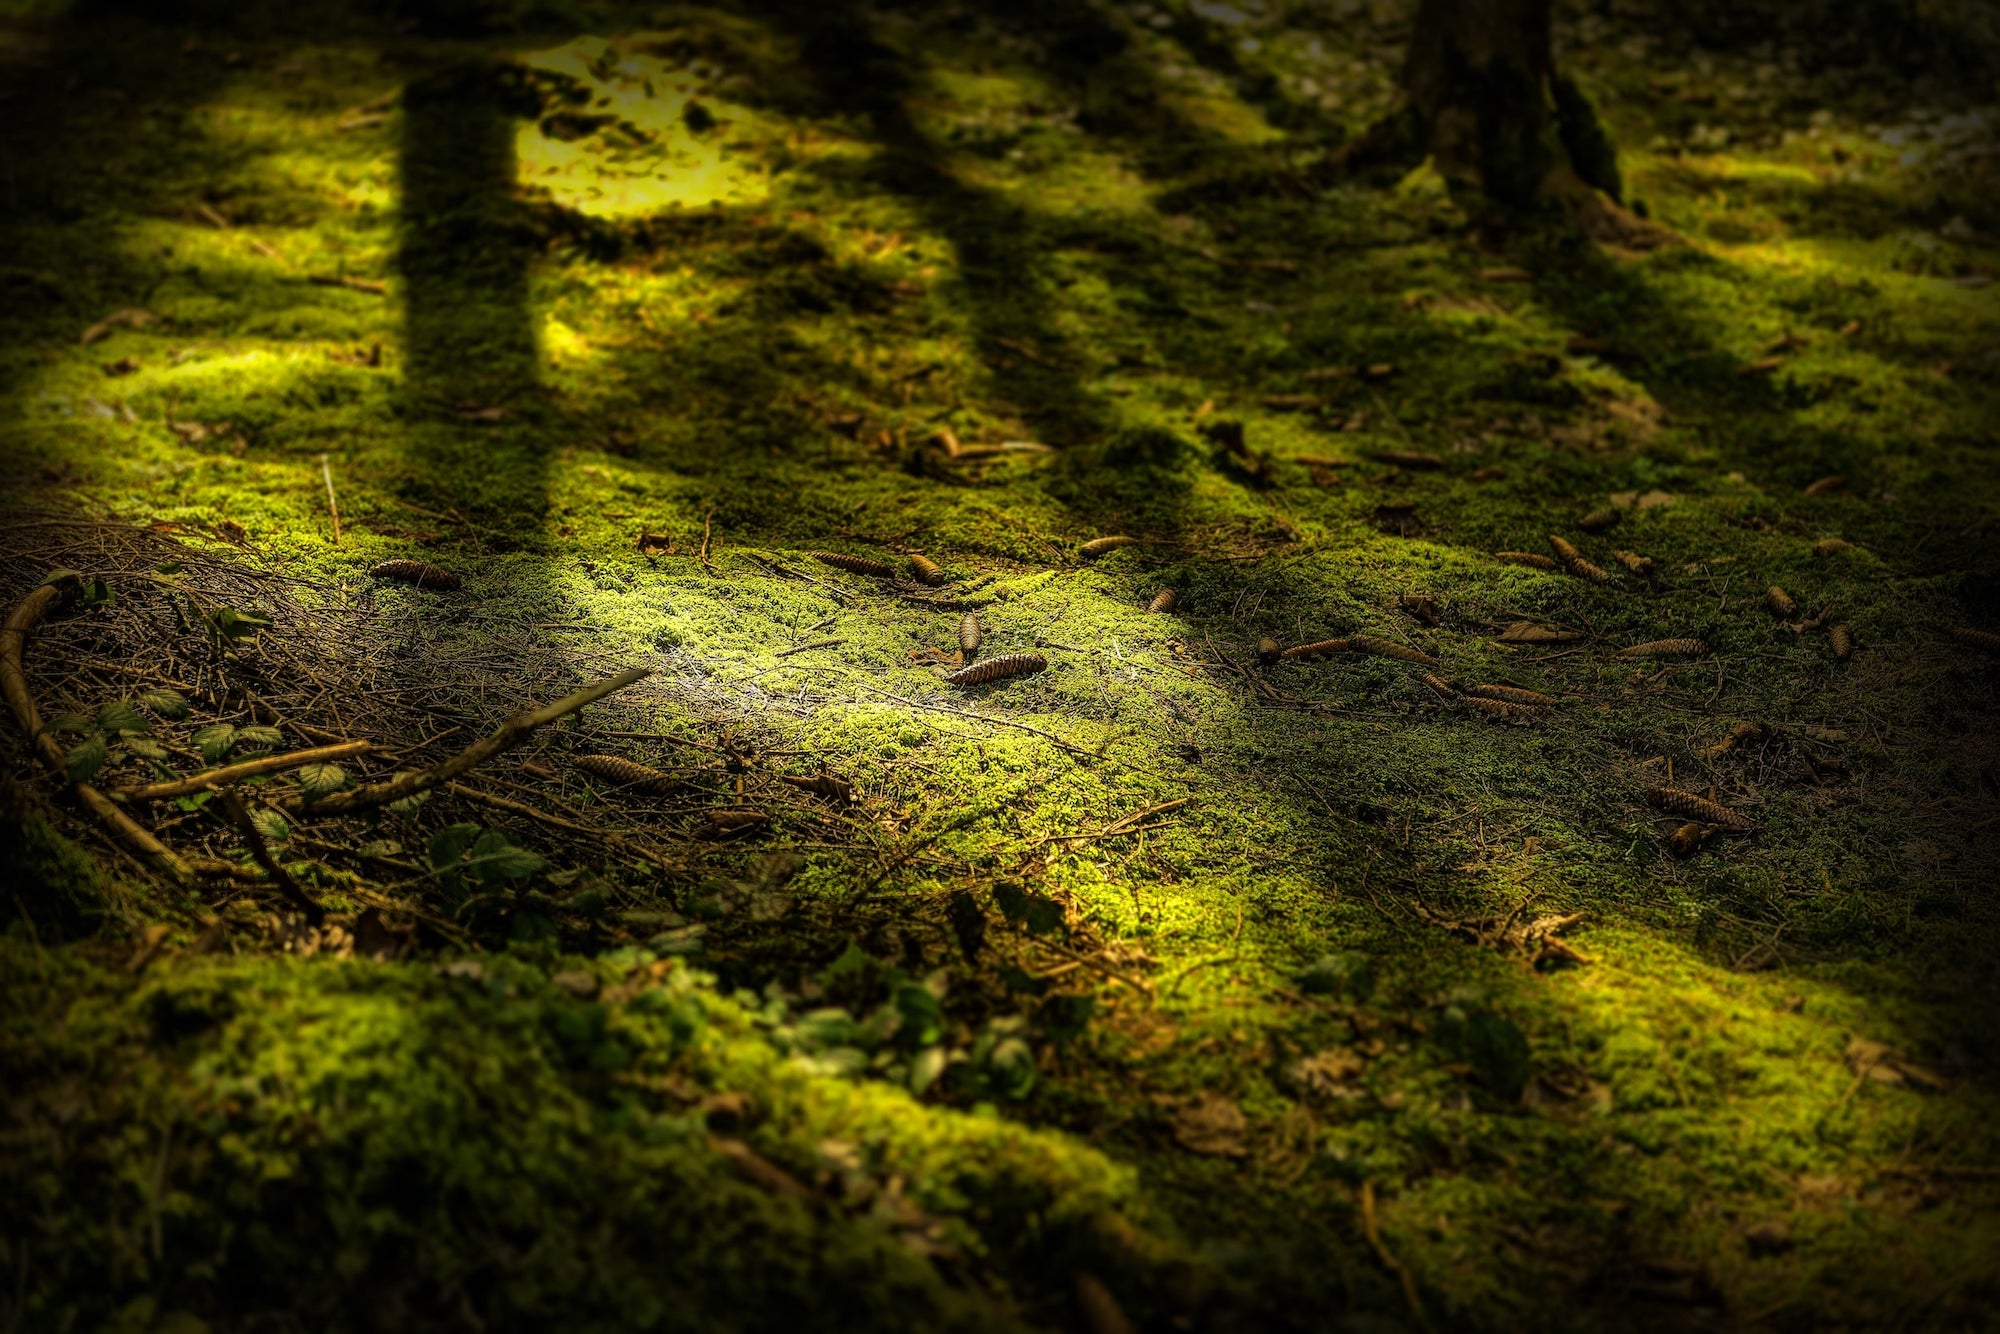 close-shot-mossy-ground-with-pine-cones-daytime-min